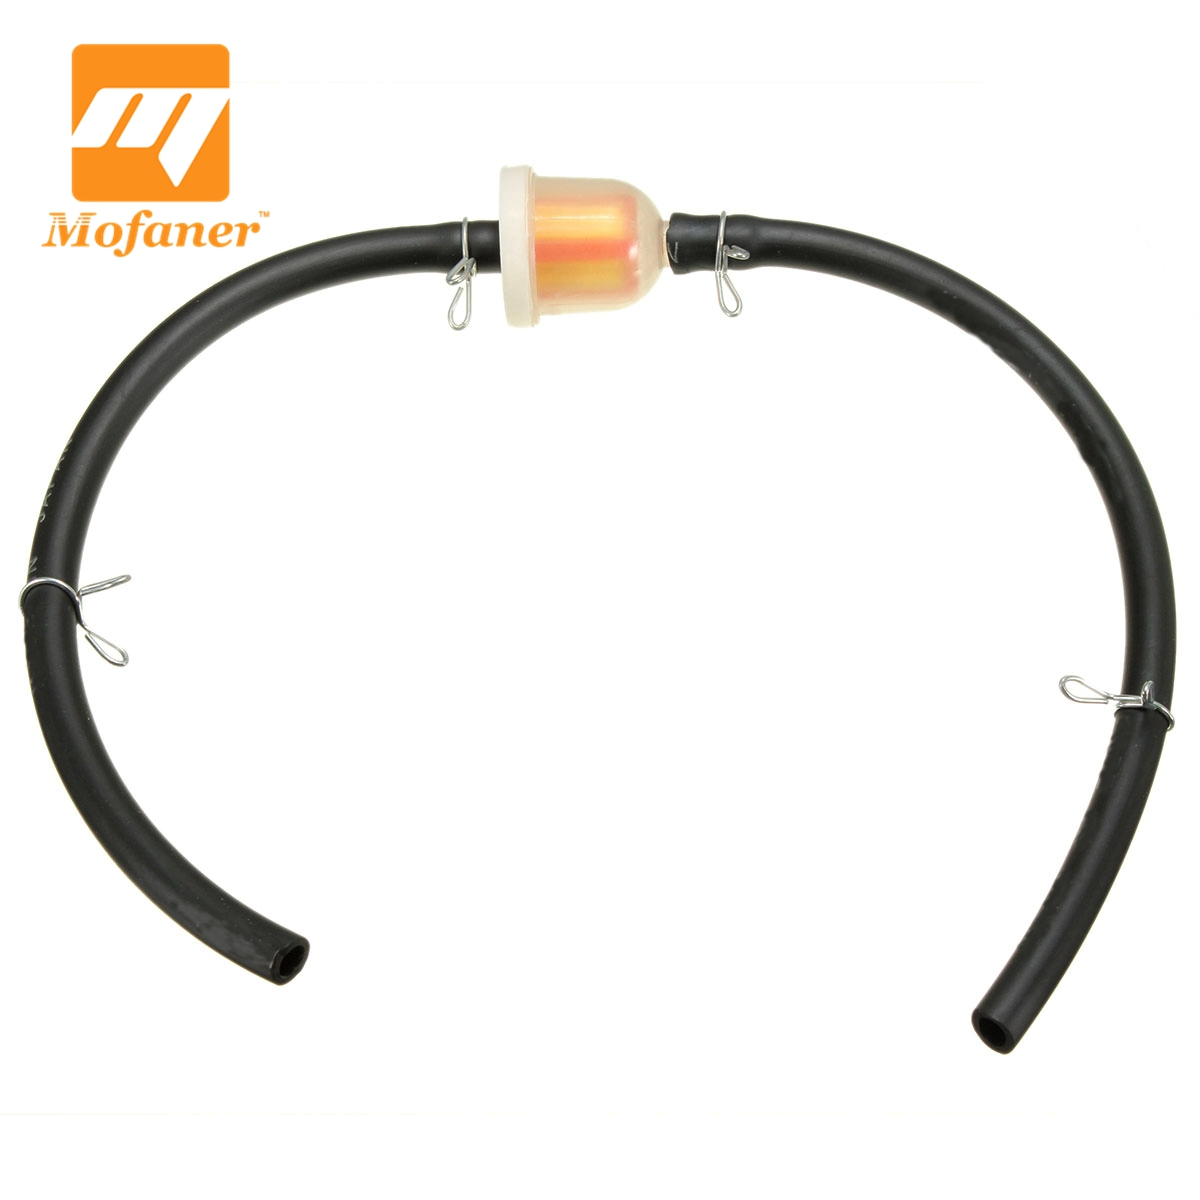 US $1.29 10% OFF|Motorcycle Gas Hose Line Fuel Filter For 47cc 49cc on